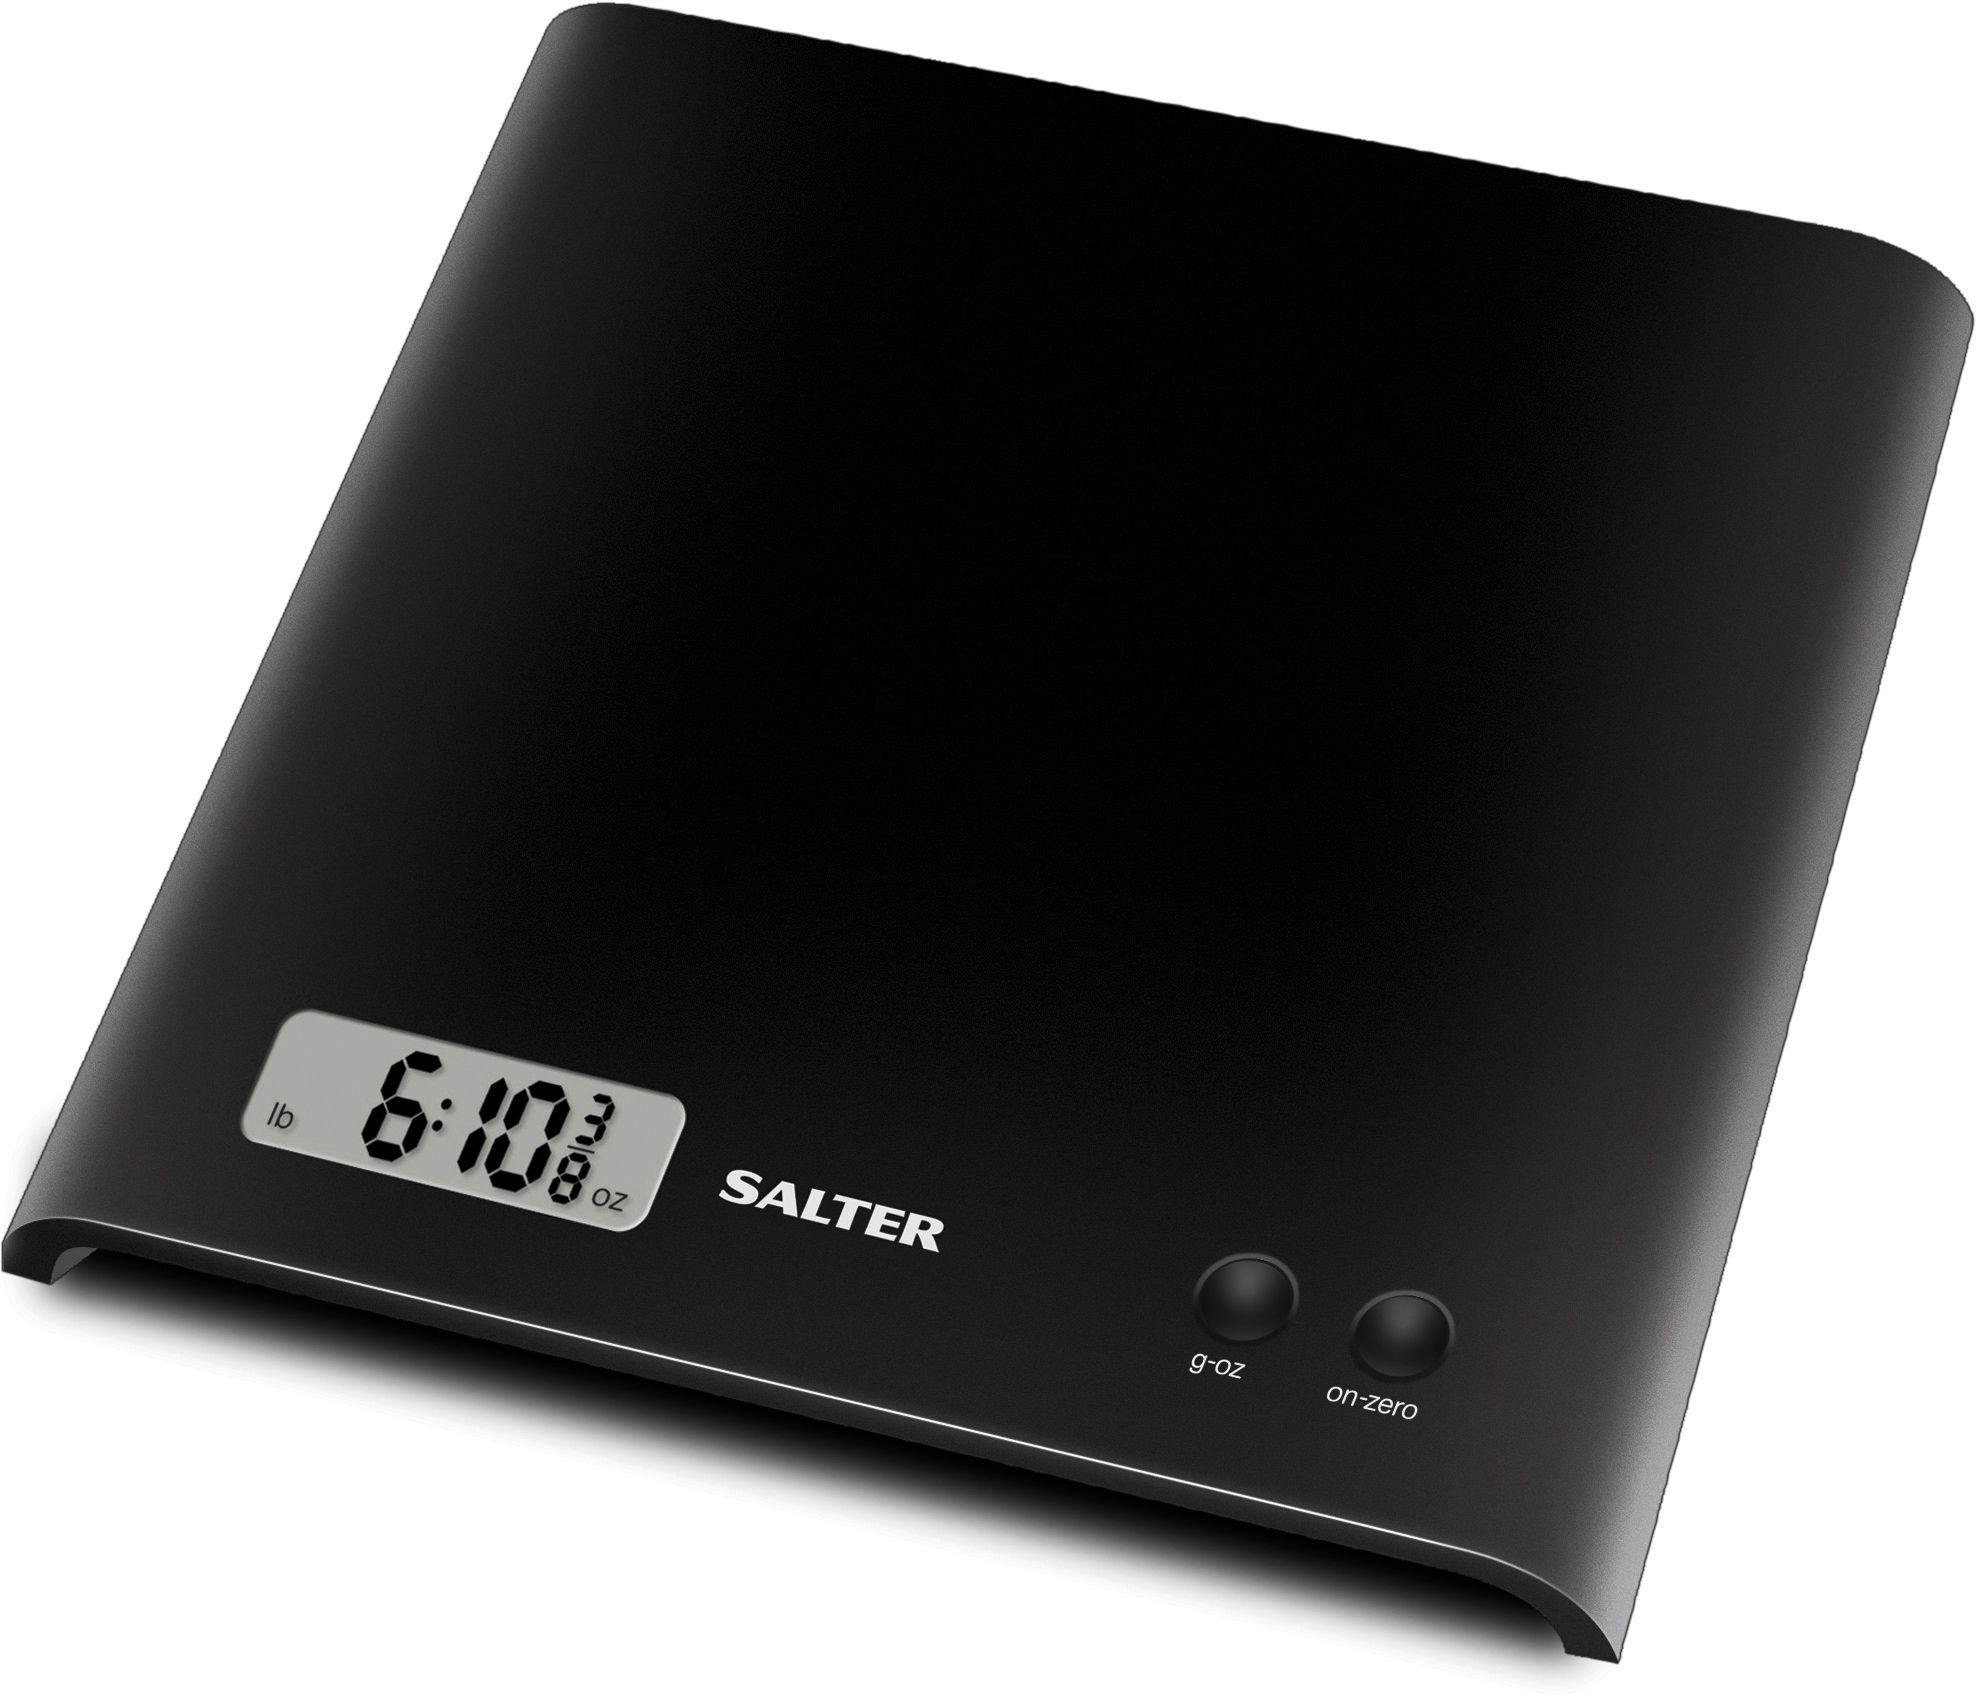 buy salter digital kitchen scale - black at argos.co.uk - your